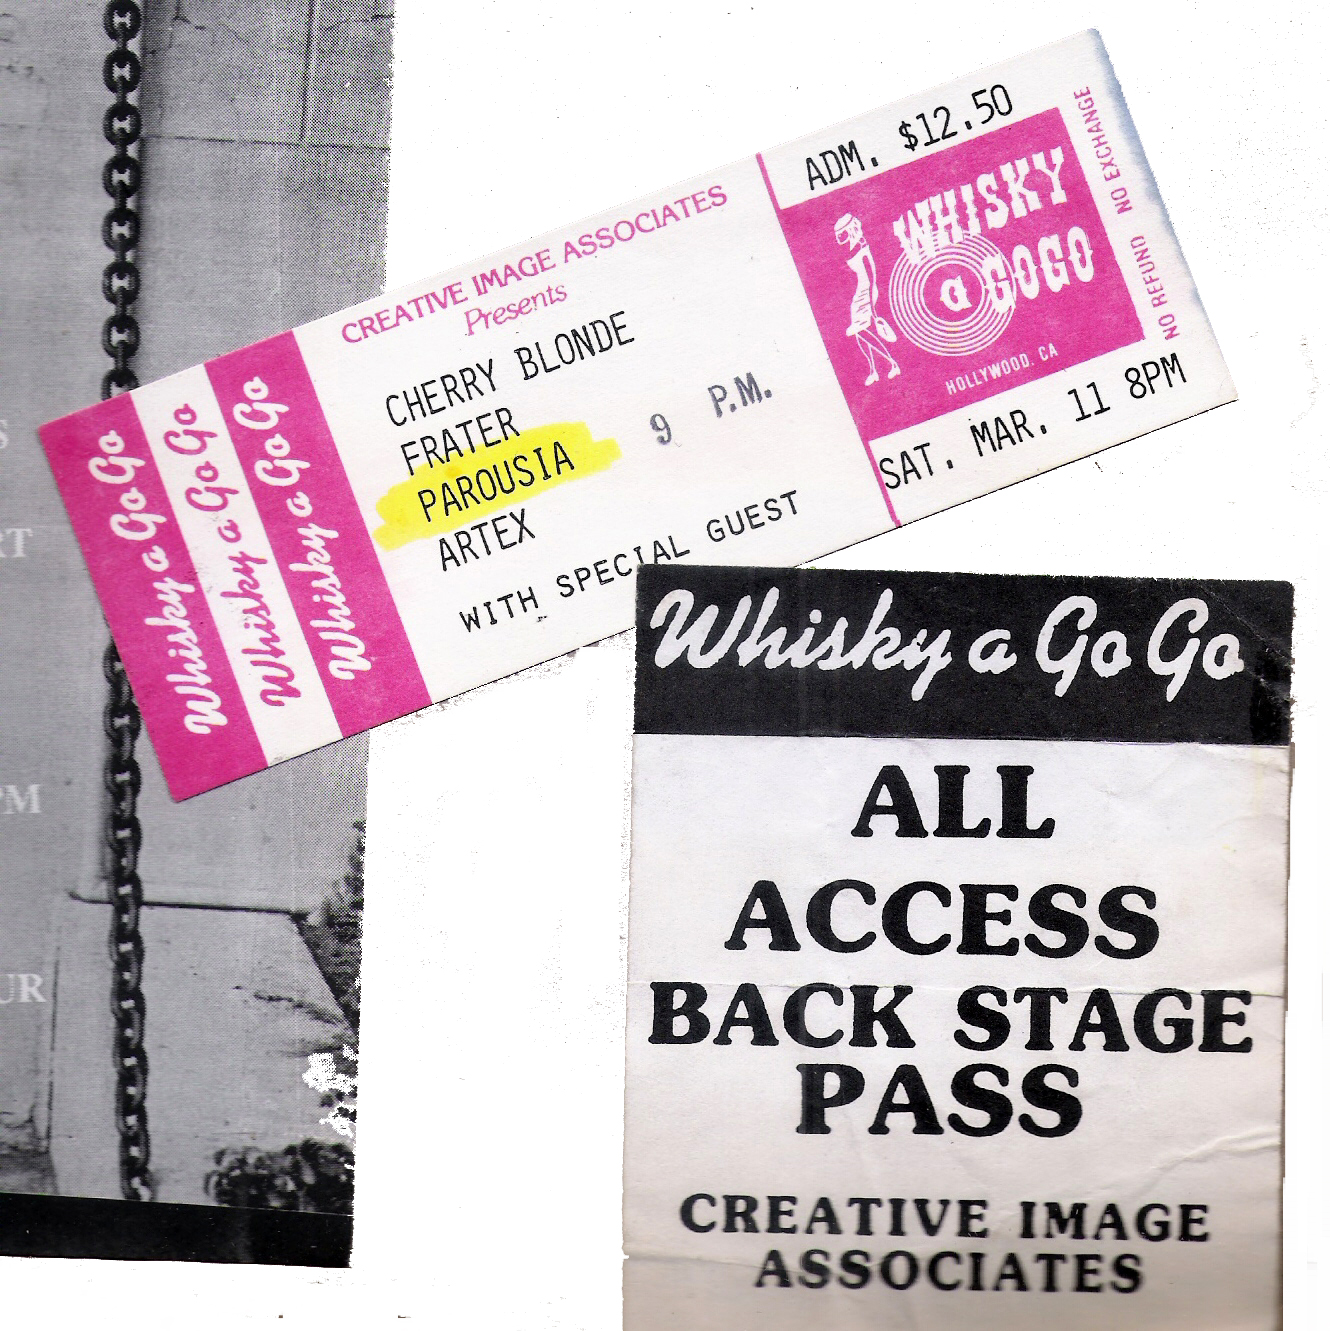 All Access Back Stage Pass at the Whisky, Saturday March 11, 1989